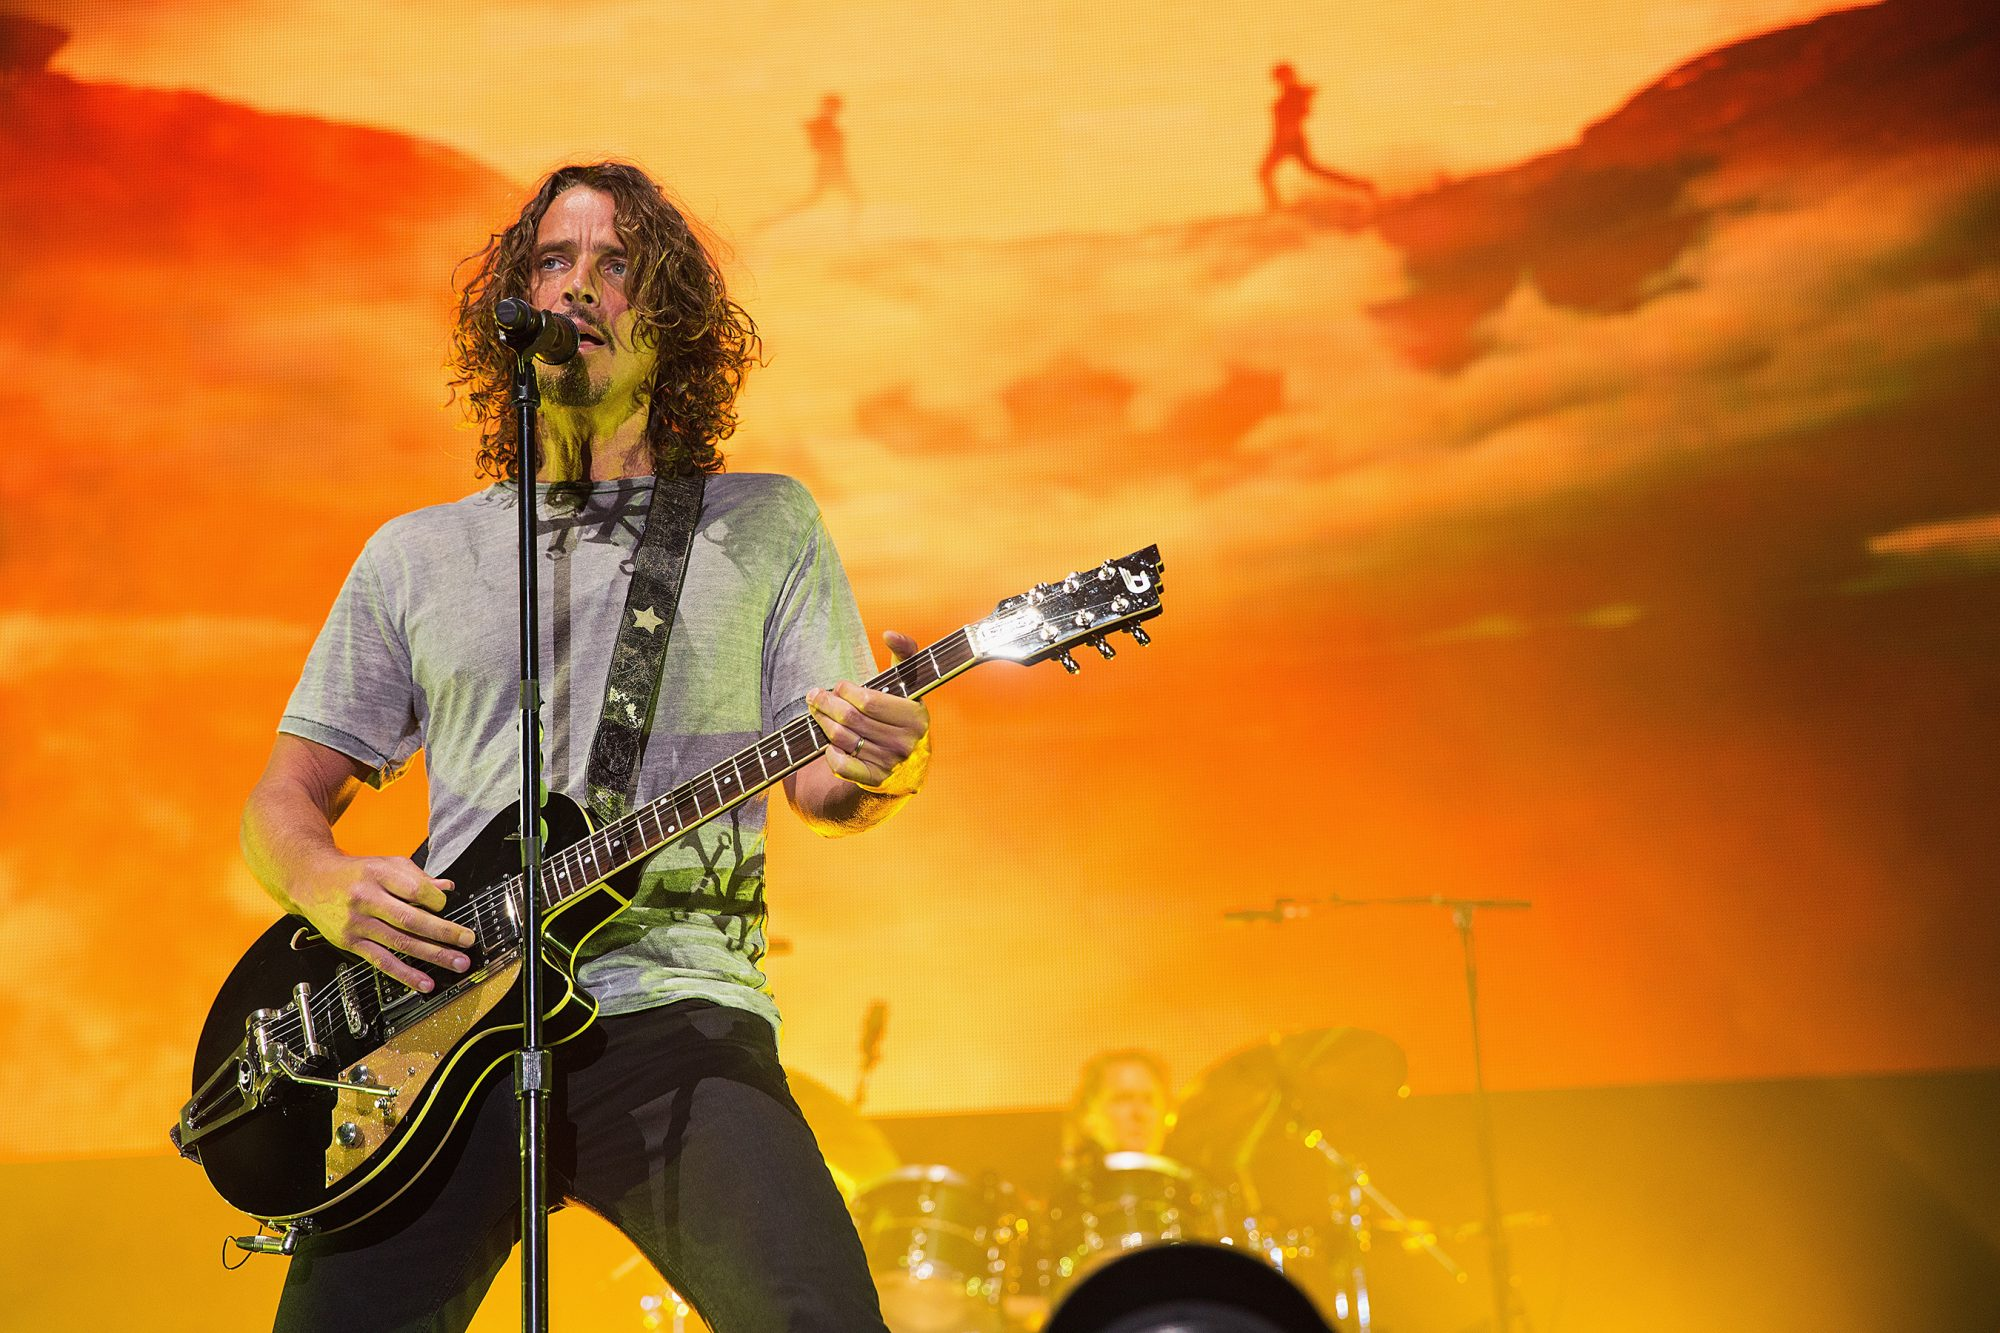 Soundgarden Performs At The Sleep Country Amphitheater